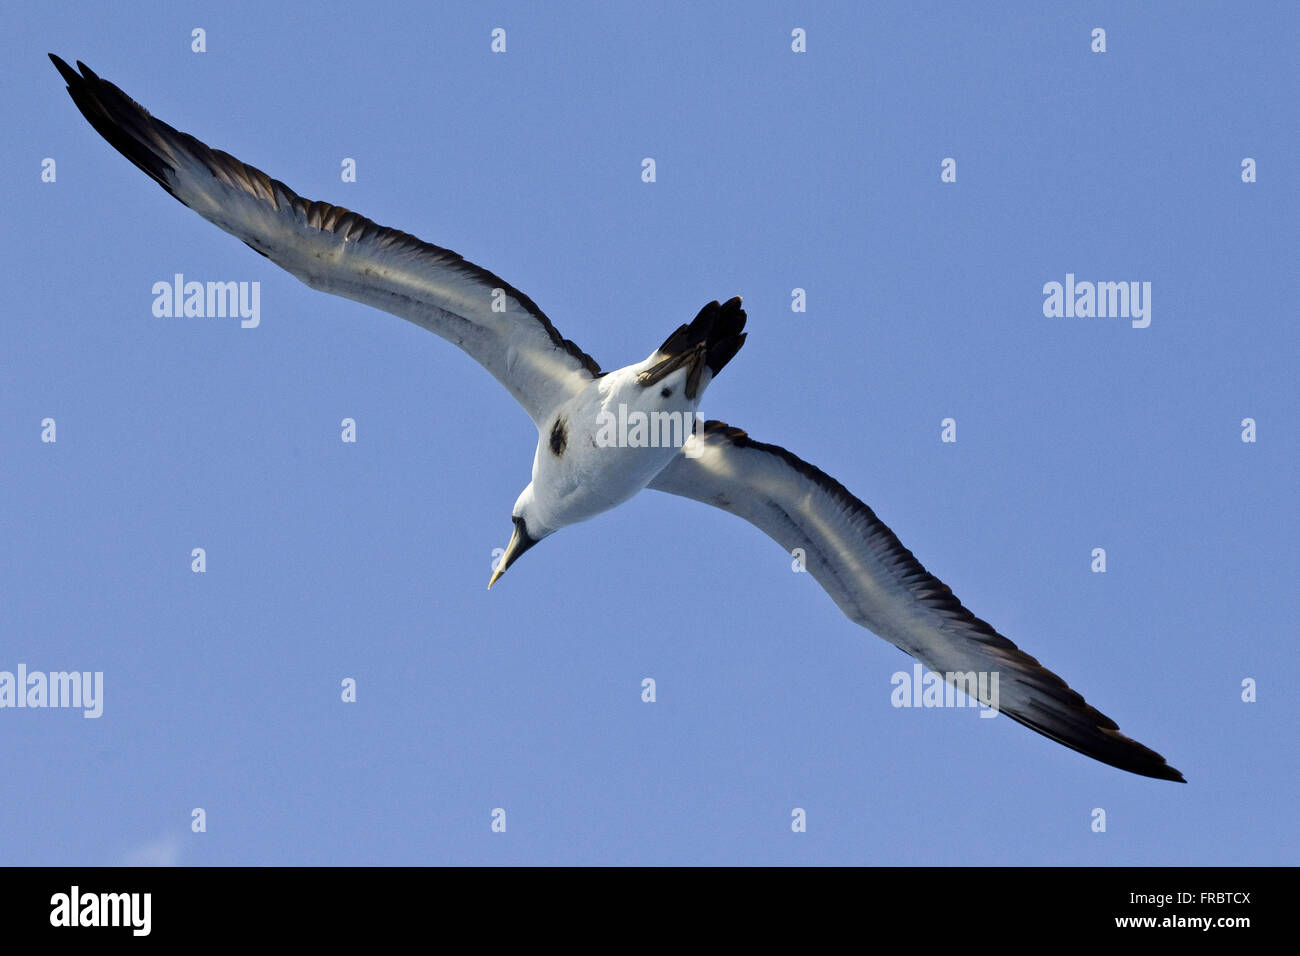 Masked Booby flying in the region of Atol das Rocas - Stock Image